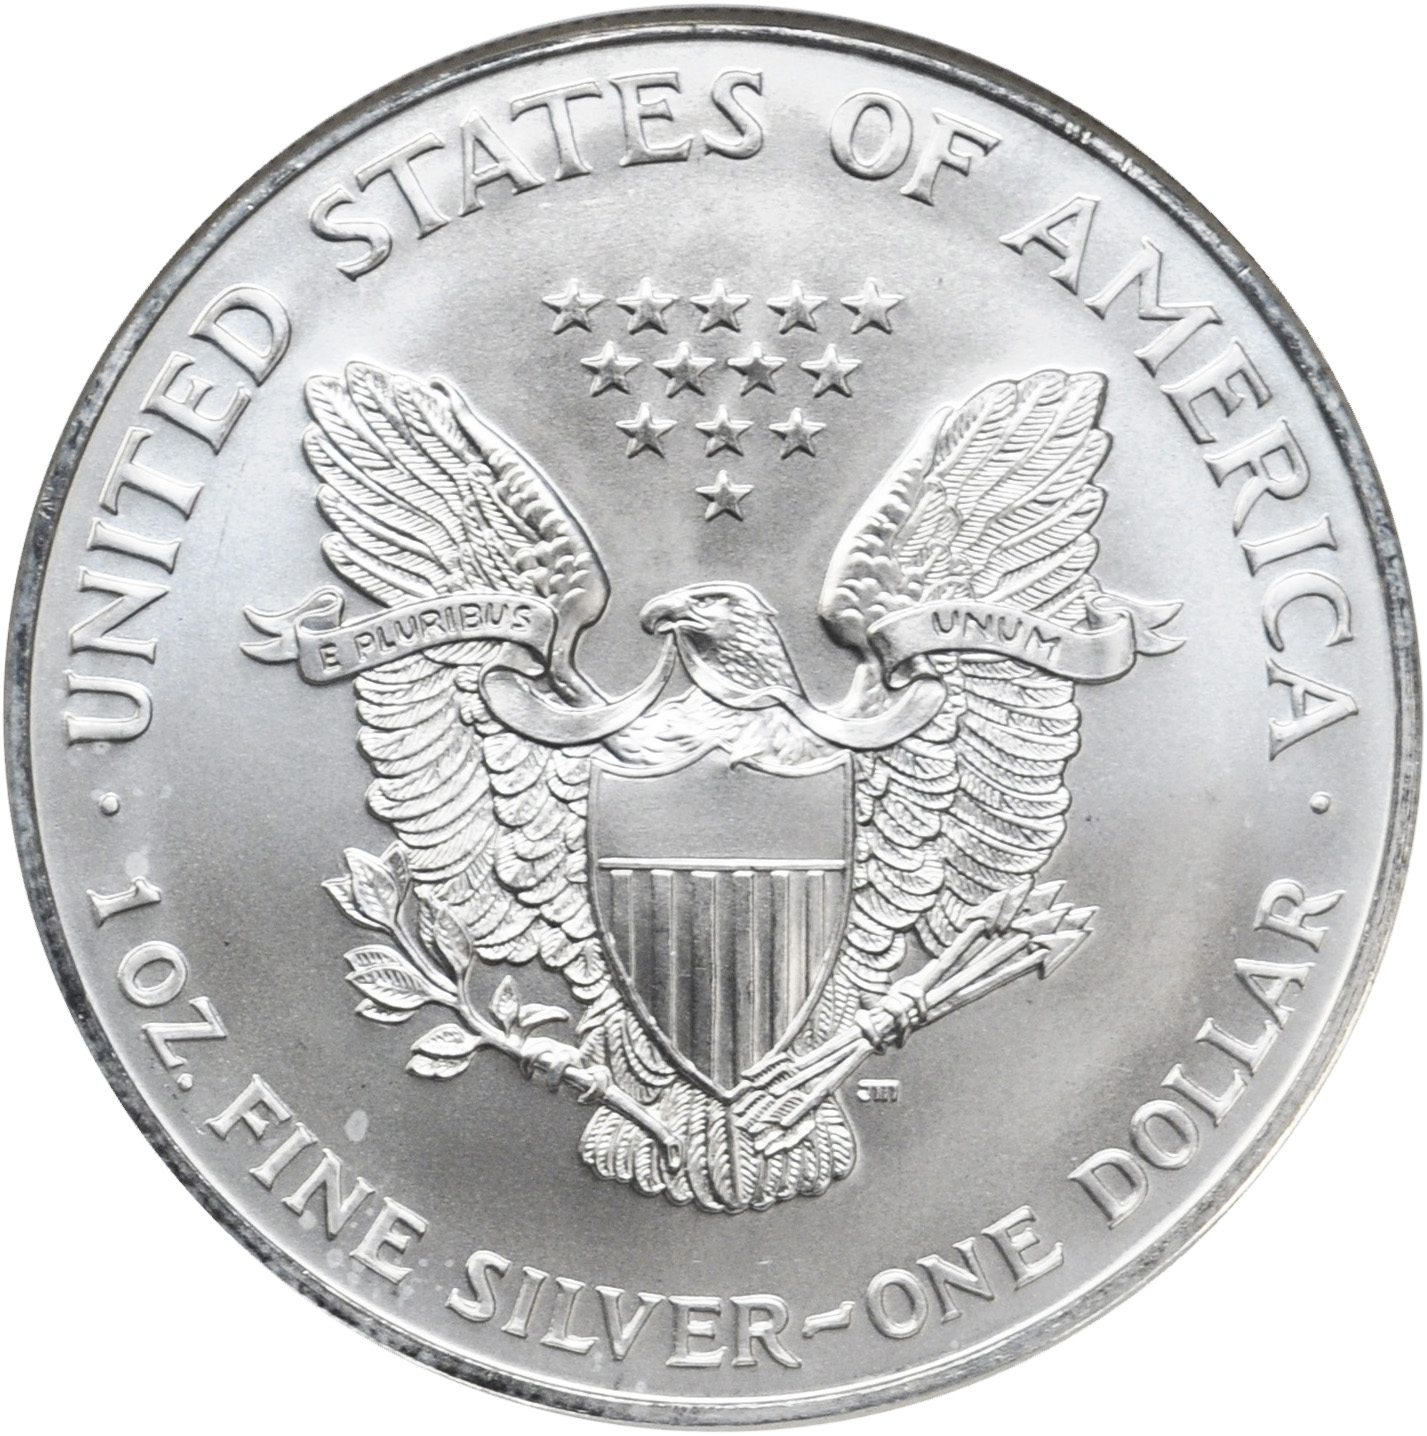 Value Of 1997 $1 Silver Coin